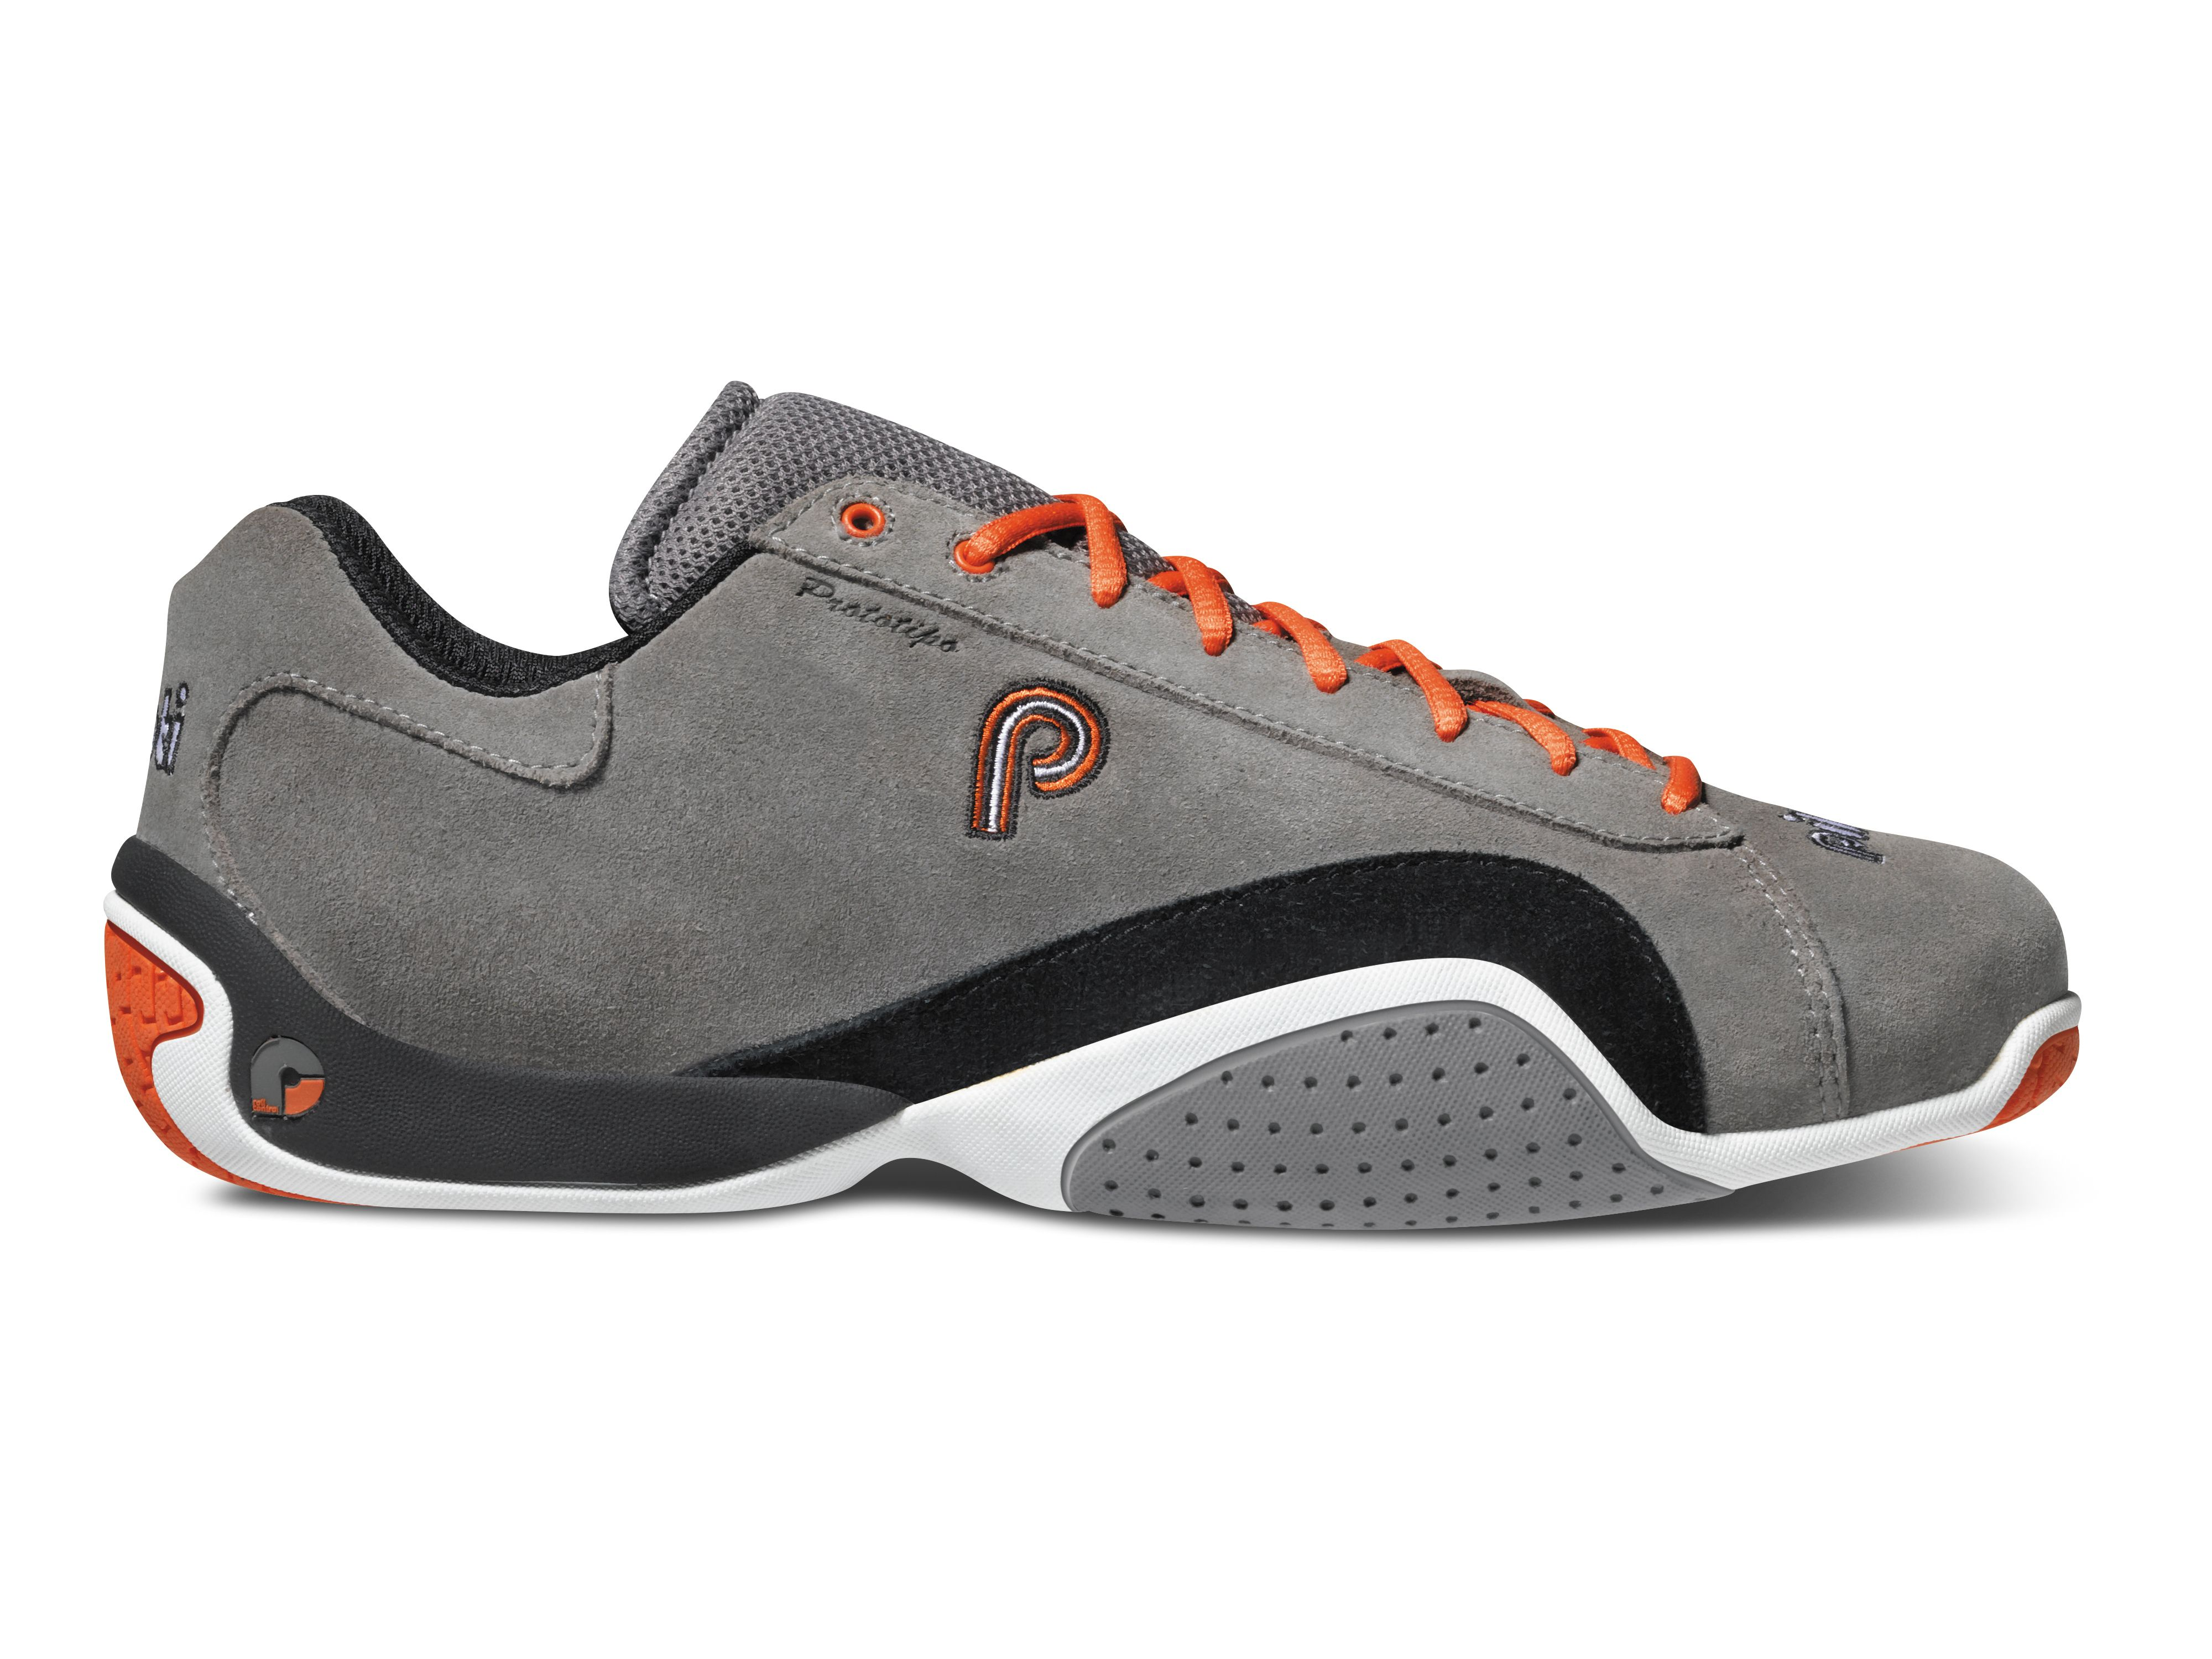 Piloti Protipo casual driving shoe.